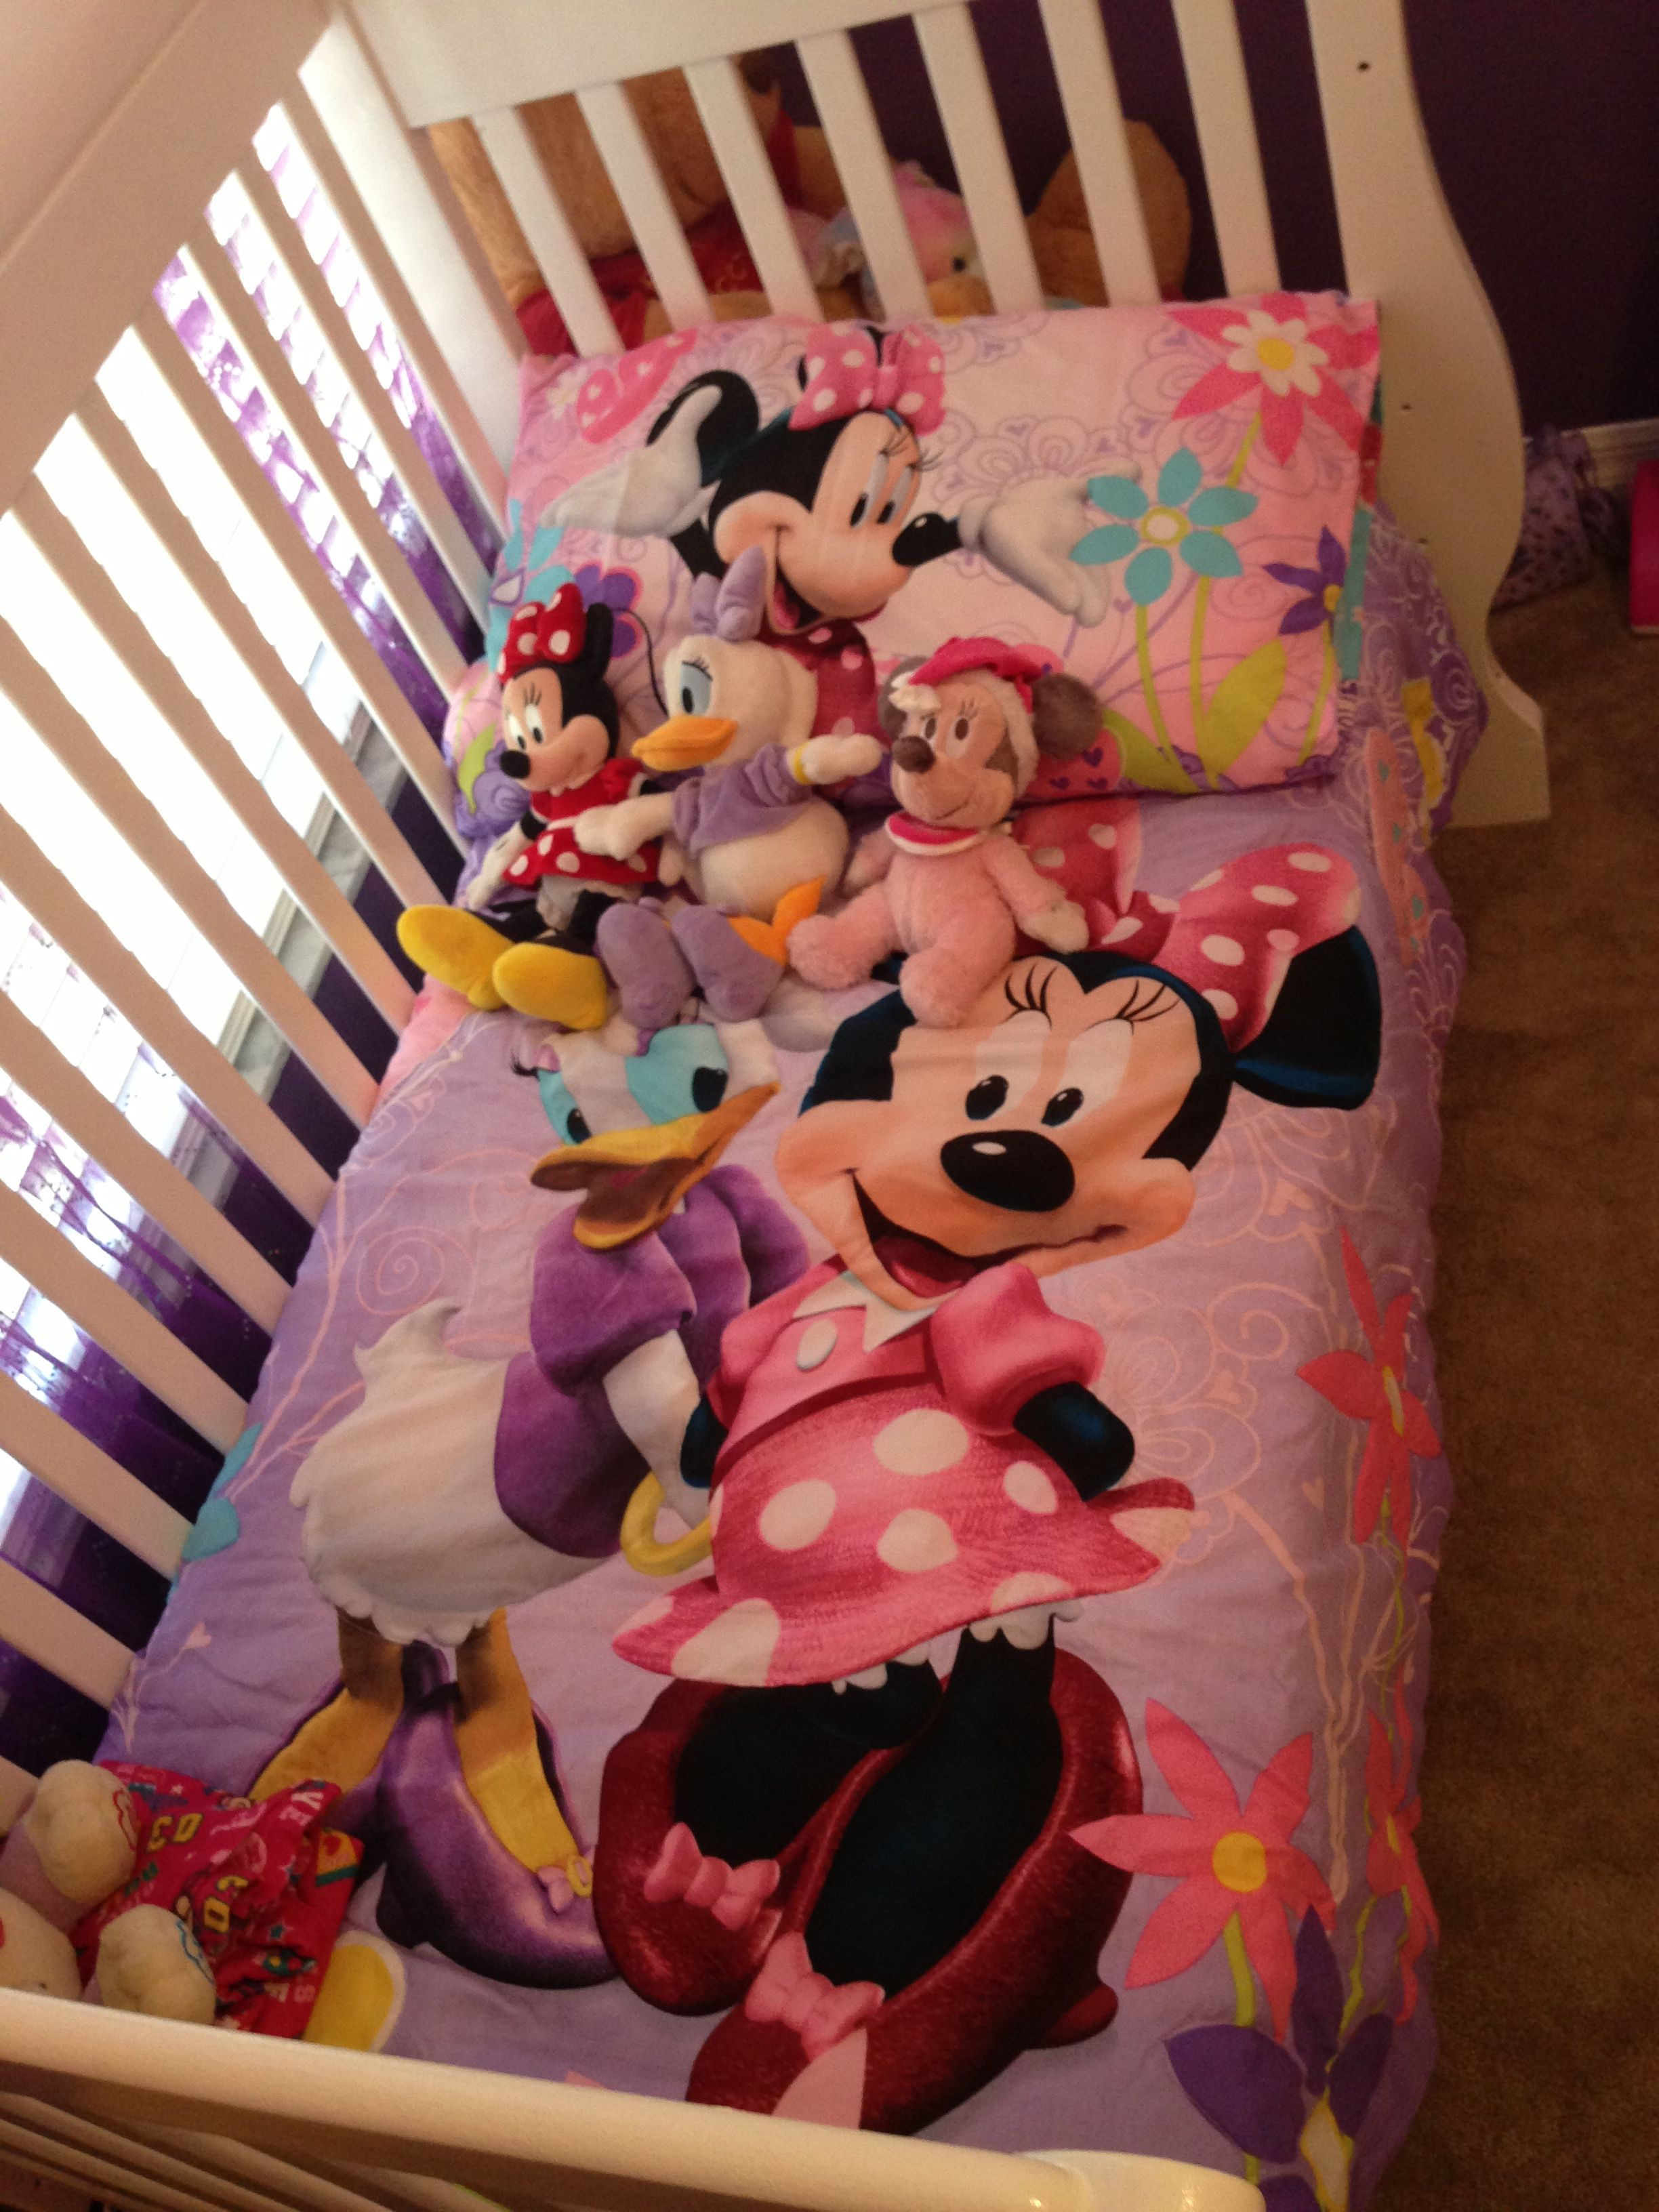 Toddler Bedding Set Minnie Mouse Bow Tique W Daisy Duck Too